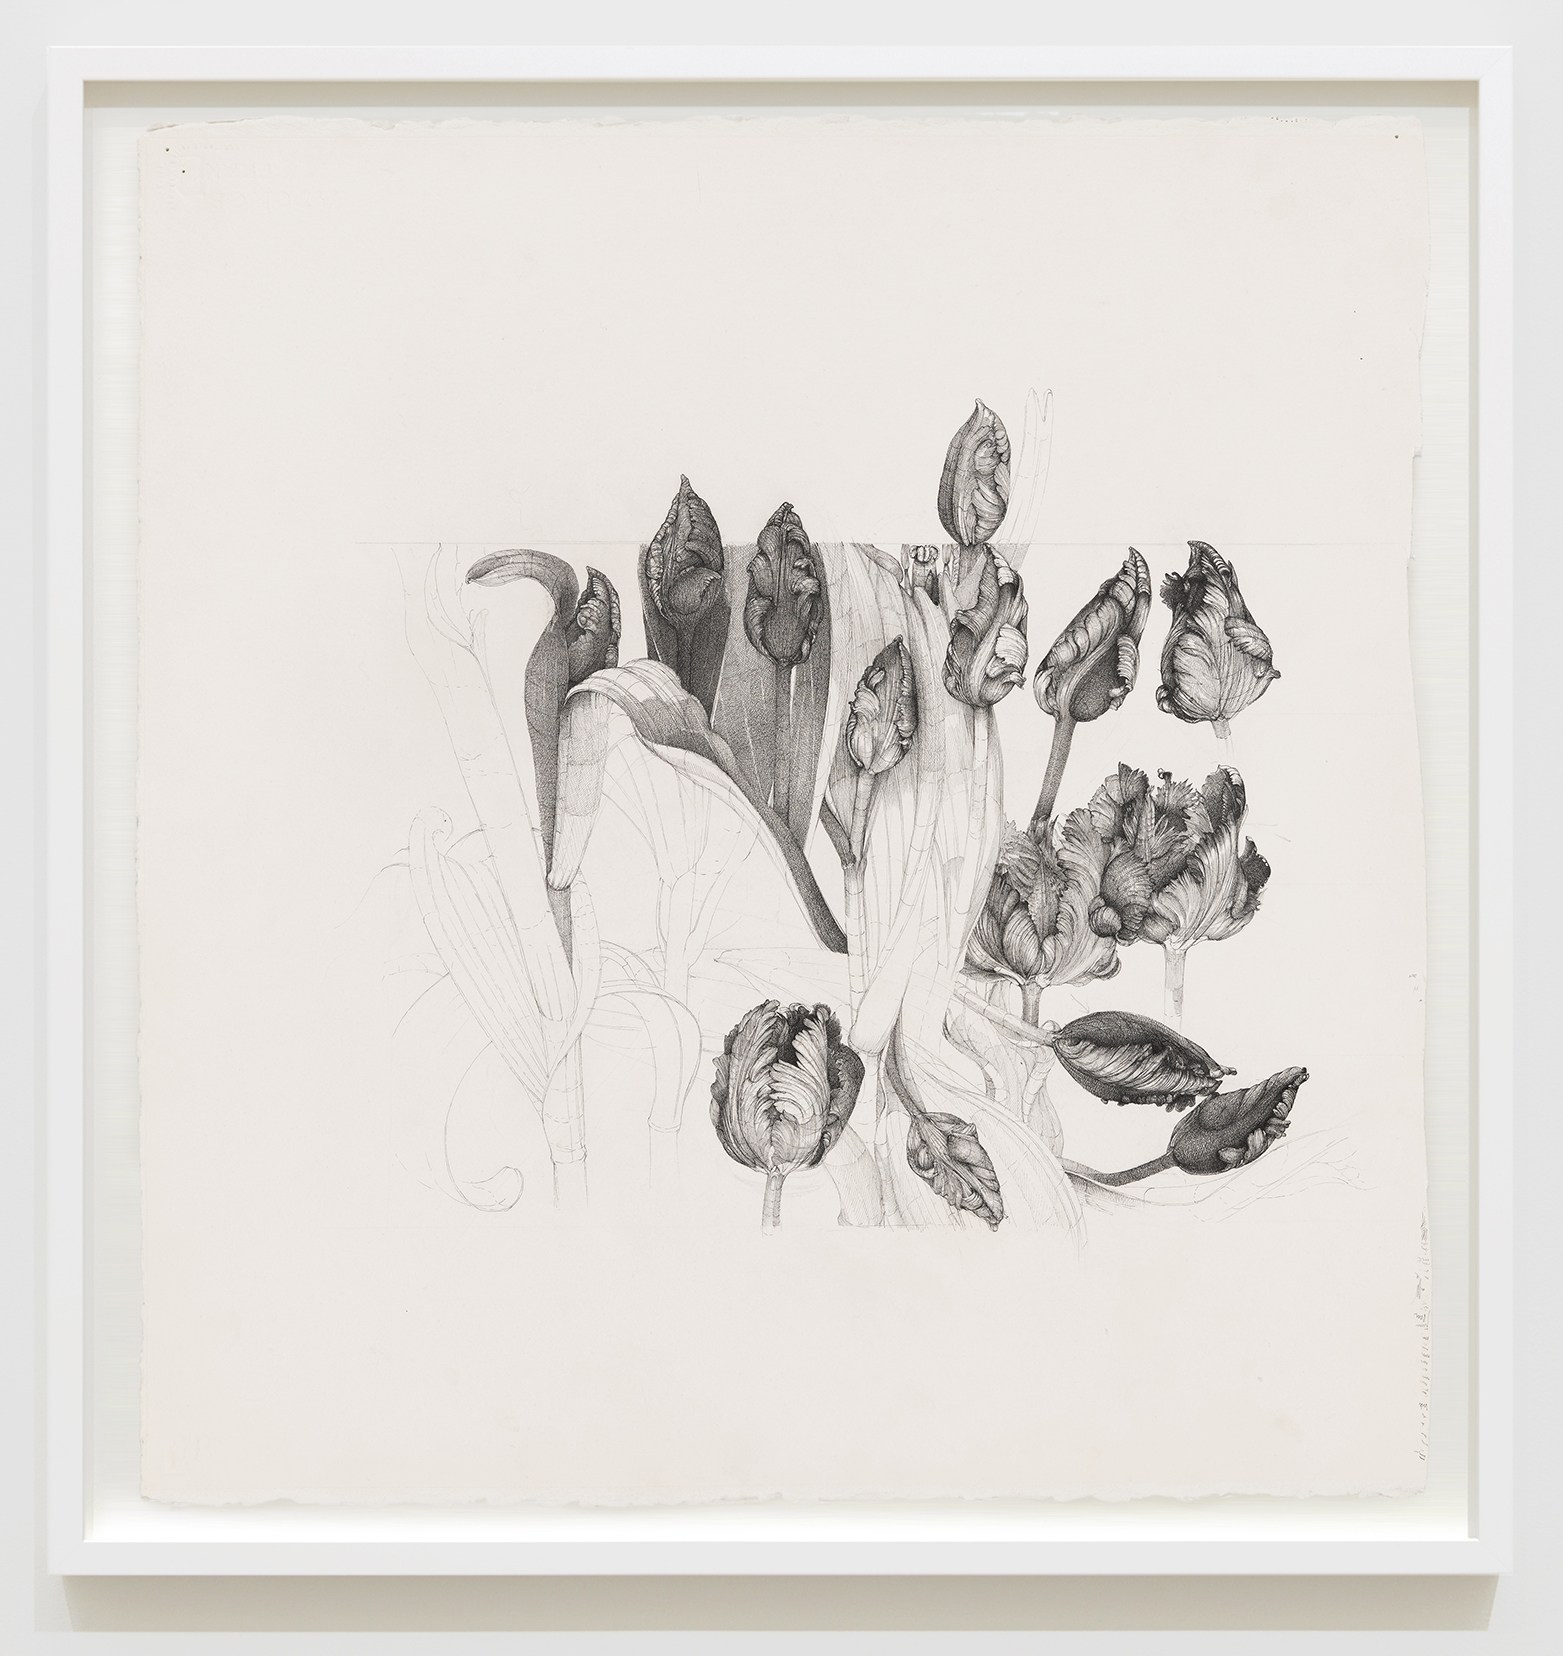 Charmian Johnson, not titled, unknown date, ink and graphite on paper, 27 x 26 in. (67 x 65 cm) by